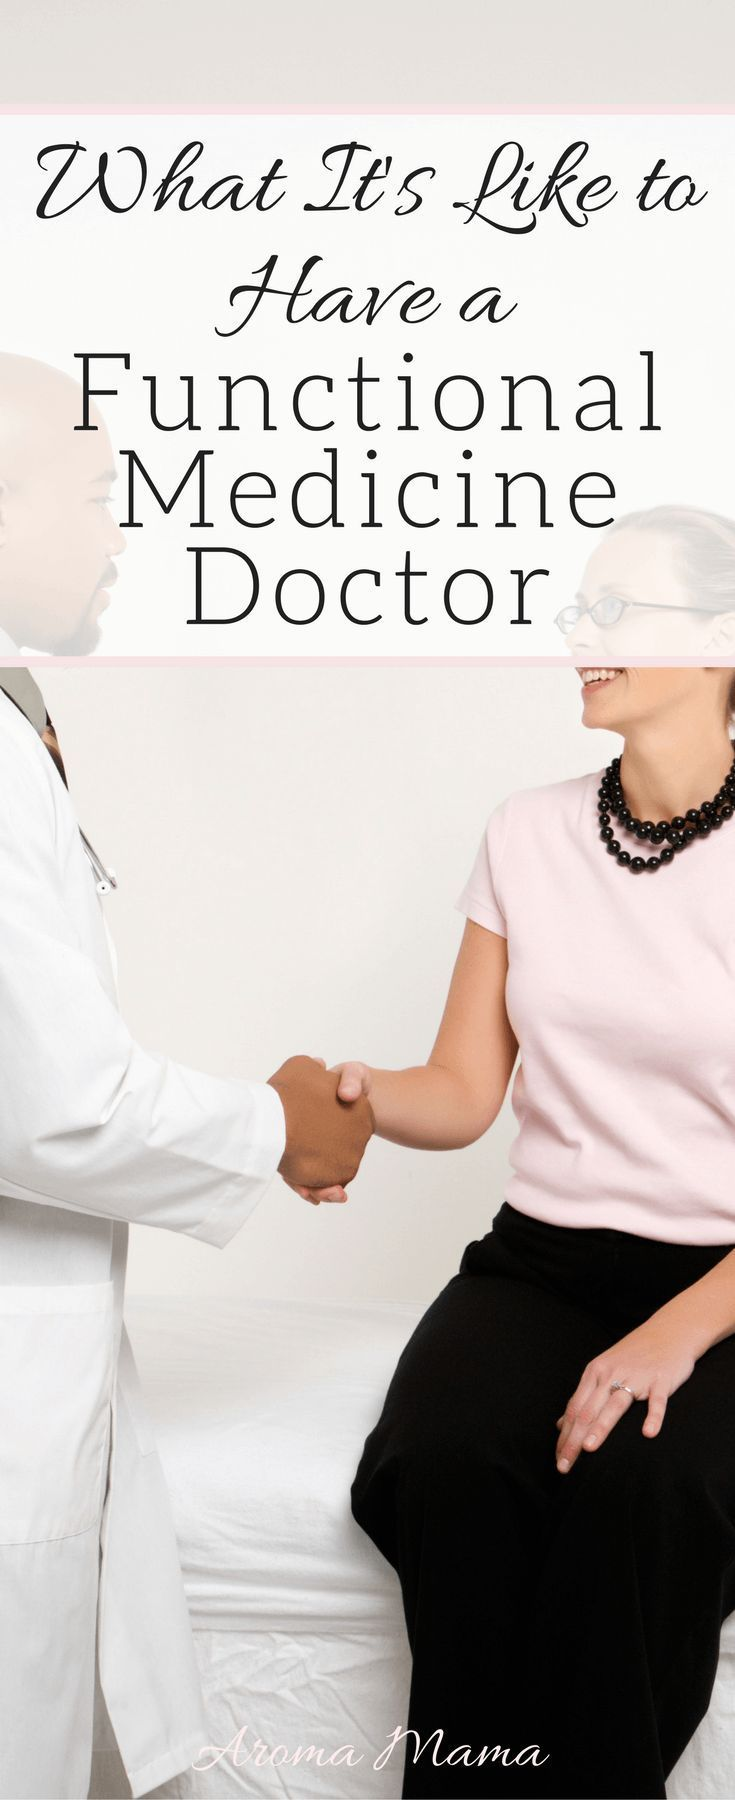 In this post, I will share with you what it's like to have a functional medicine doctor, but first is the story of how I found this model of healthcare.